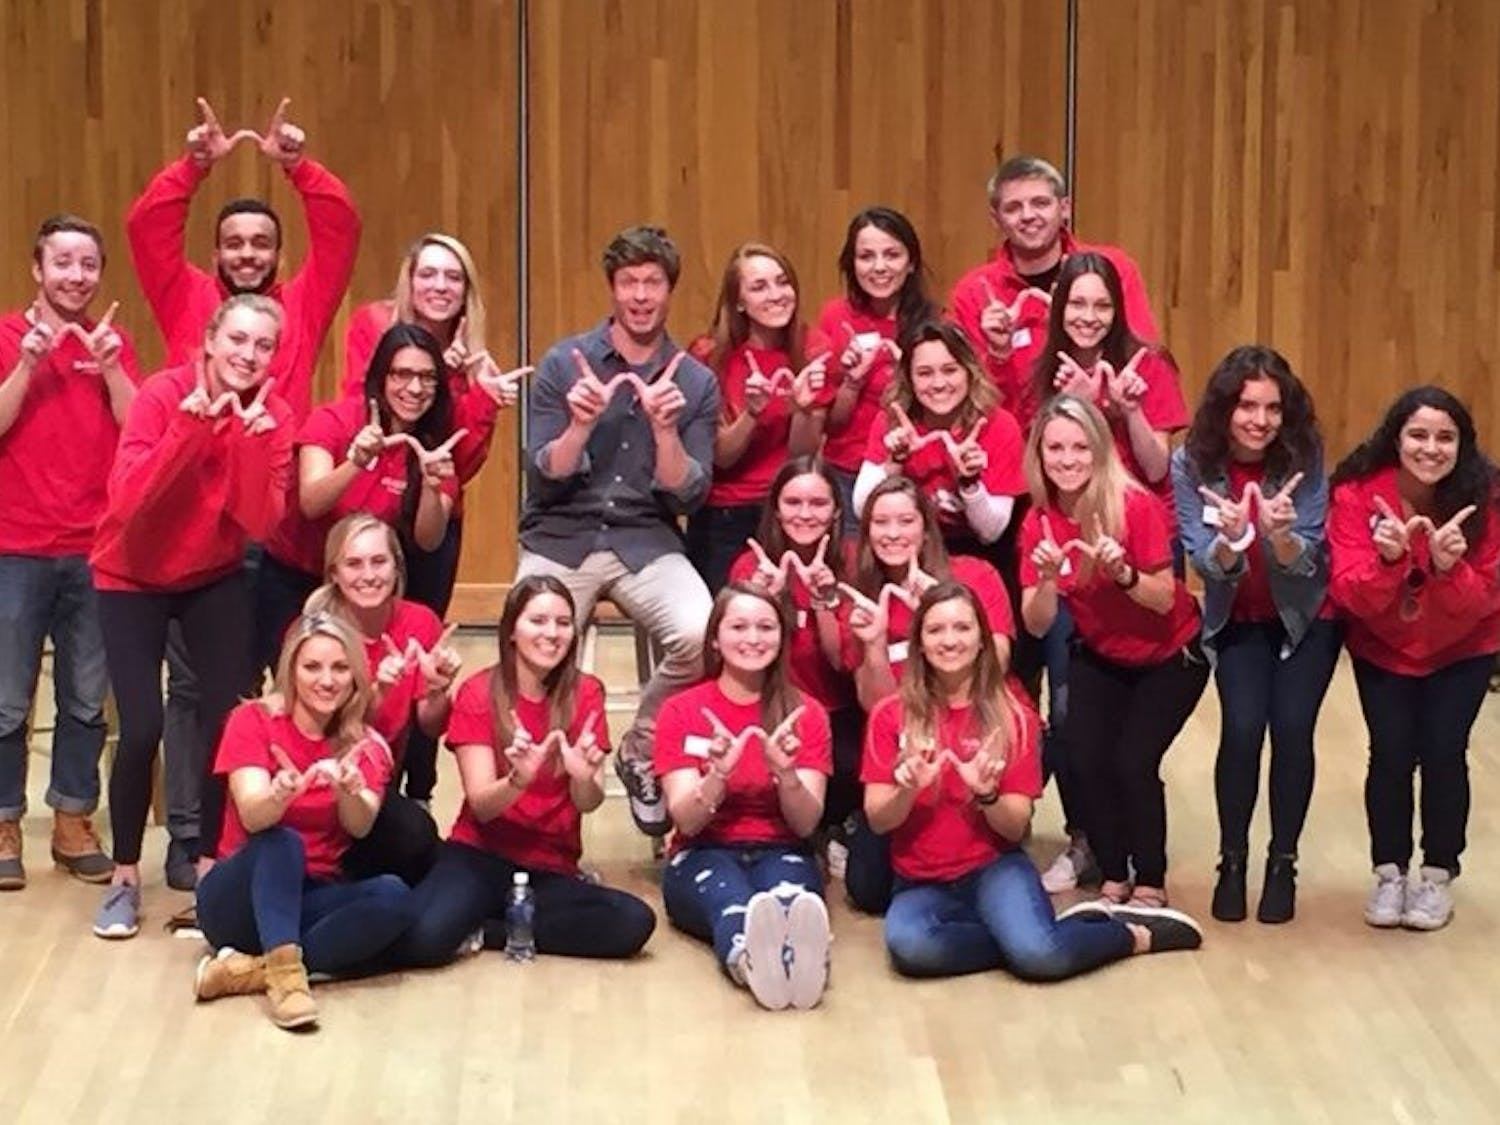 """Anders Holm, a UW-Madison alumnus who stars in Comedy Central's series, """"Workaholics,"""" poses with members of UW-Madison Homecoming Committee after his """"RED Talk"""" which kicked-off homecoming week."""